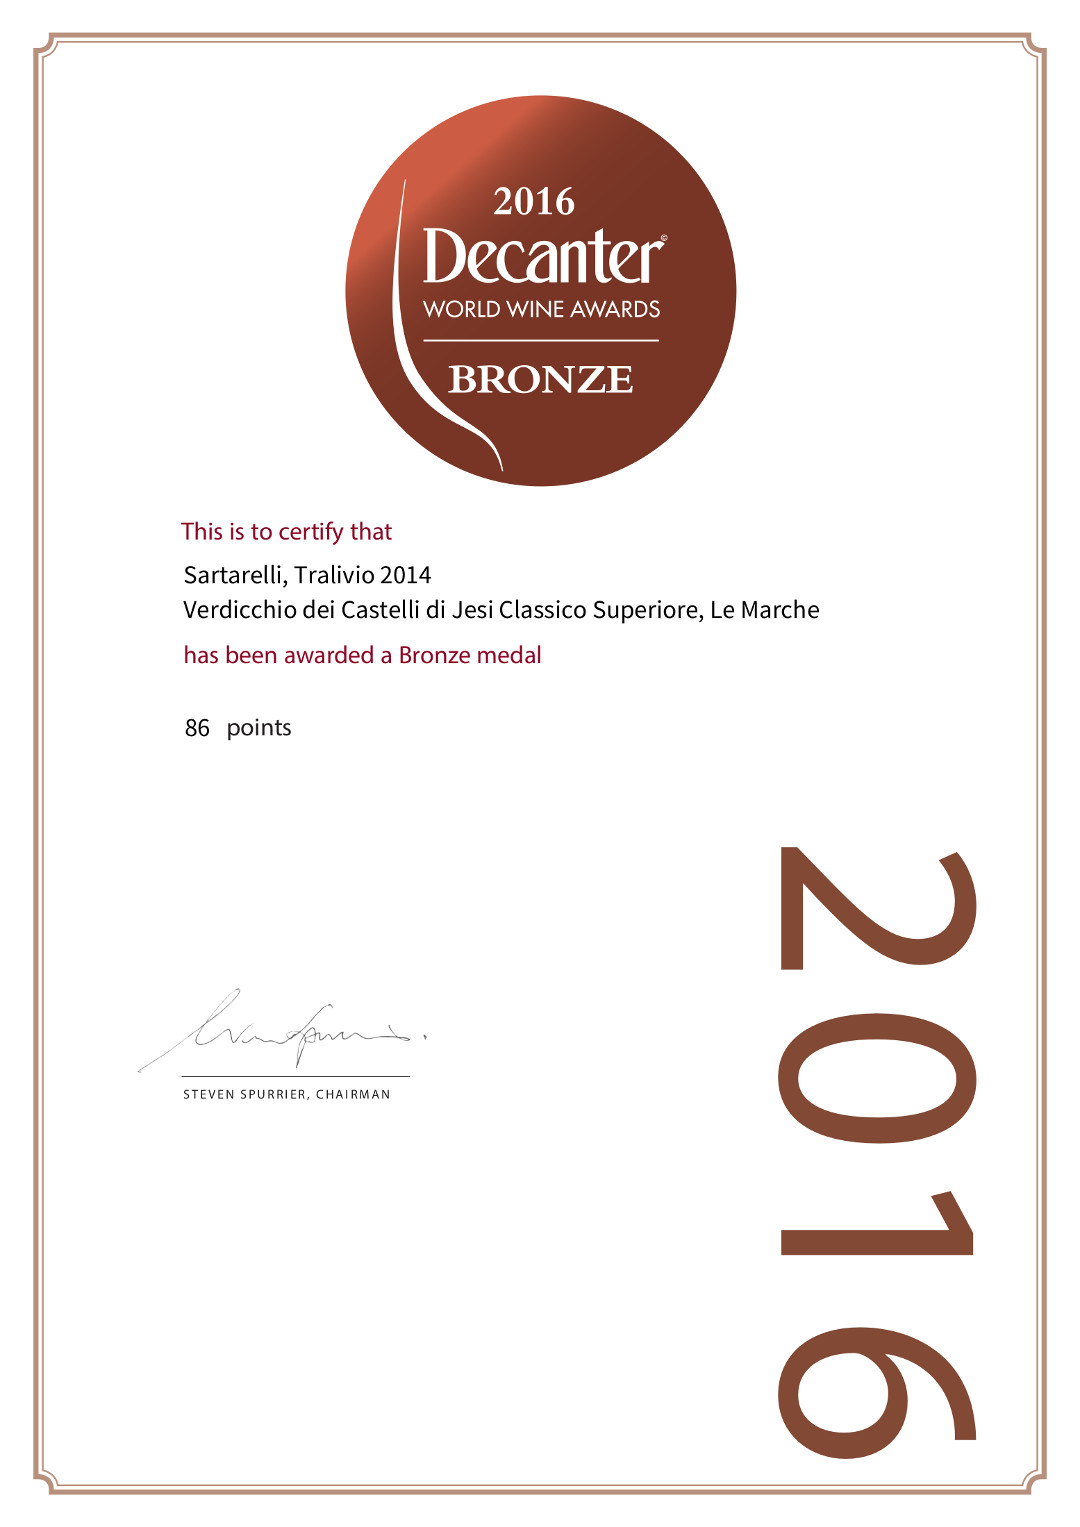 Tralivio 2014 - Bronze Medal - Decanter 2016